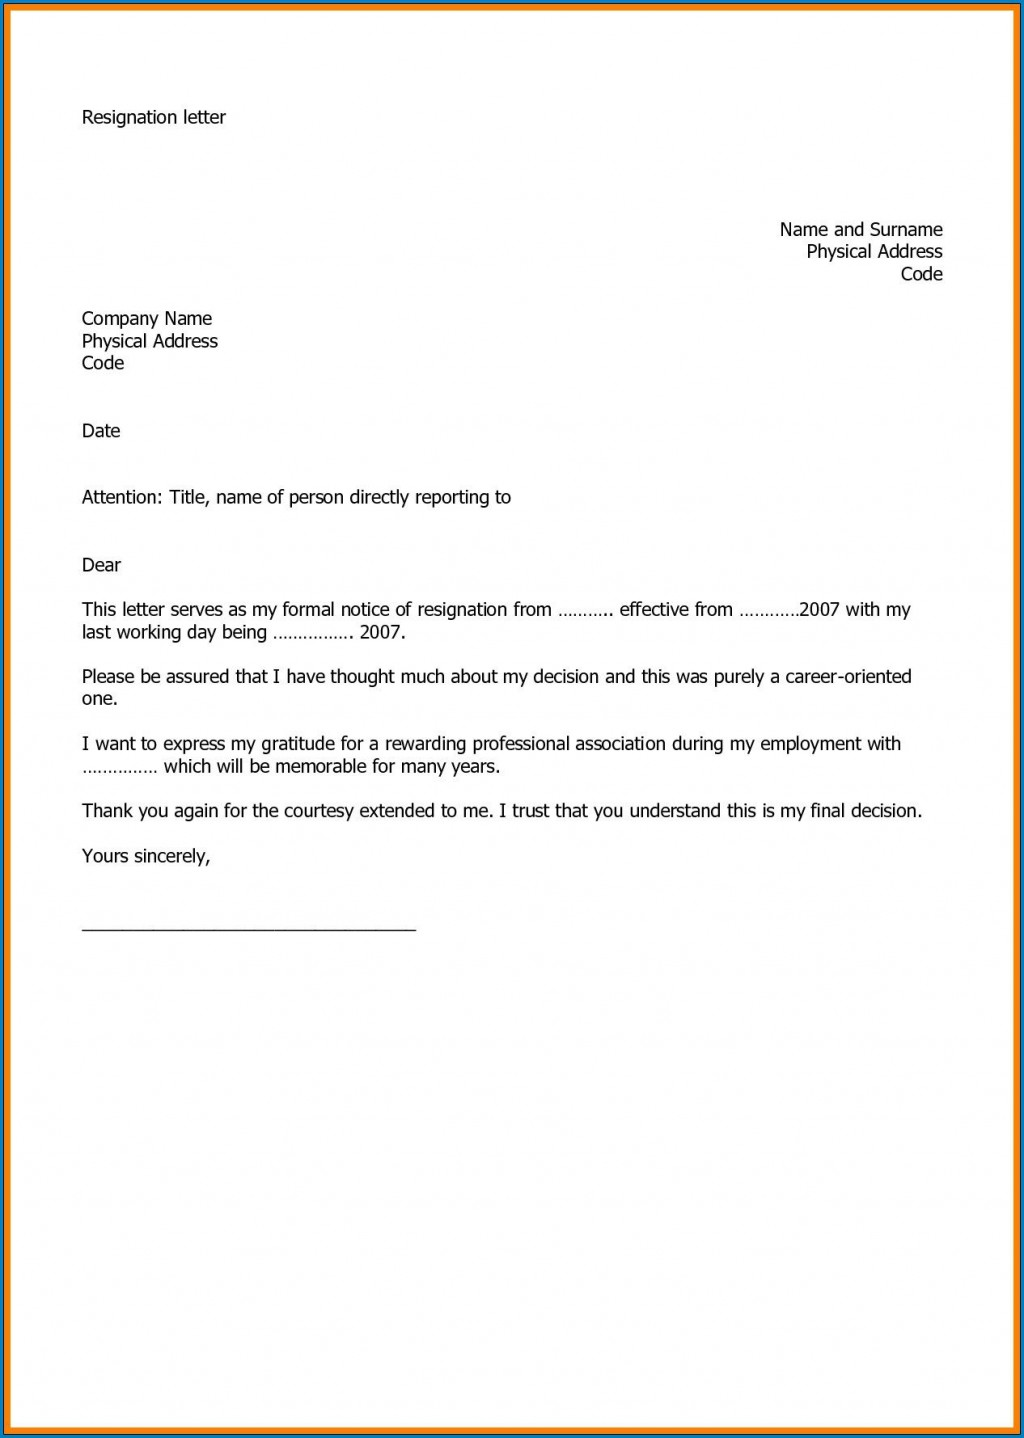 005 Stirring Resignation Letter Template Word High Def  Malaysia UkLarge